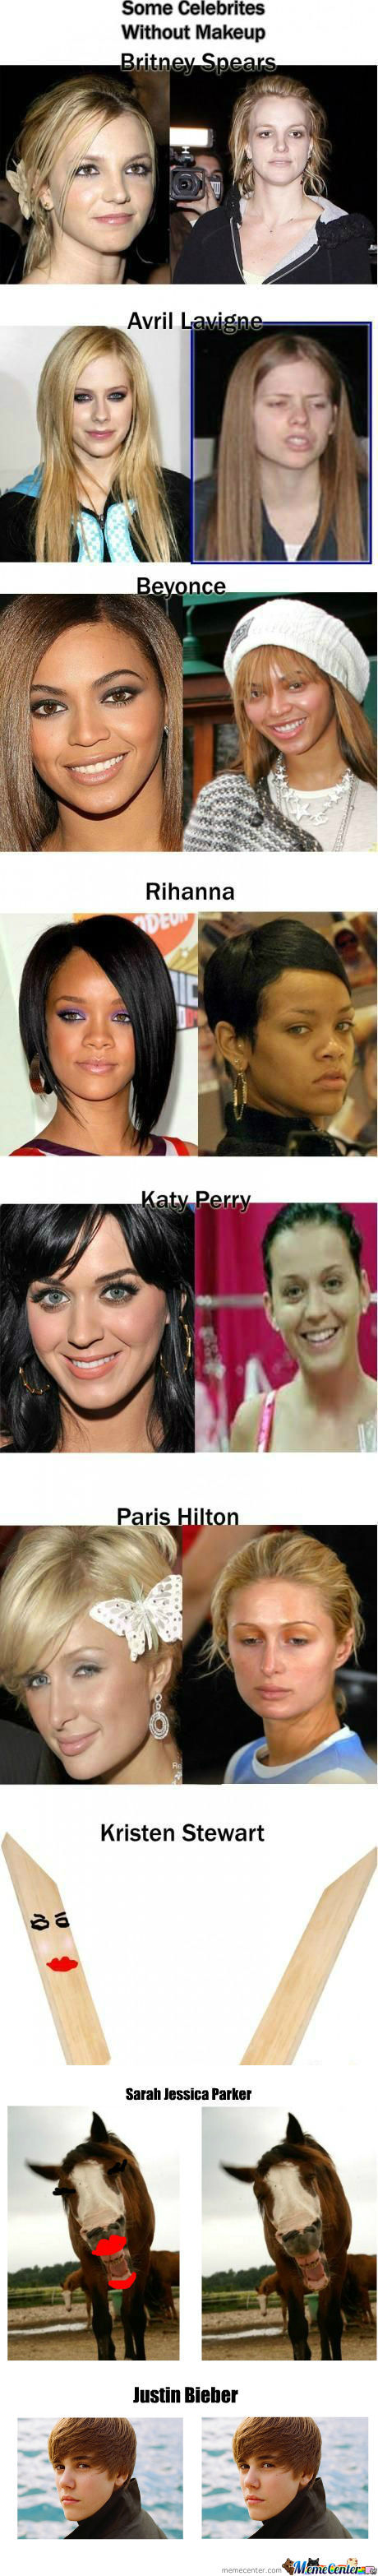 [RMX] [RMX] Celebrities Without Make Up